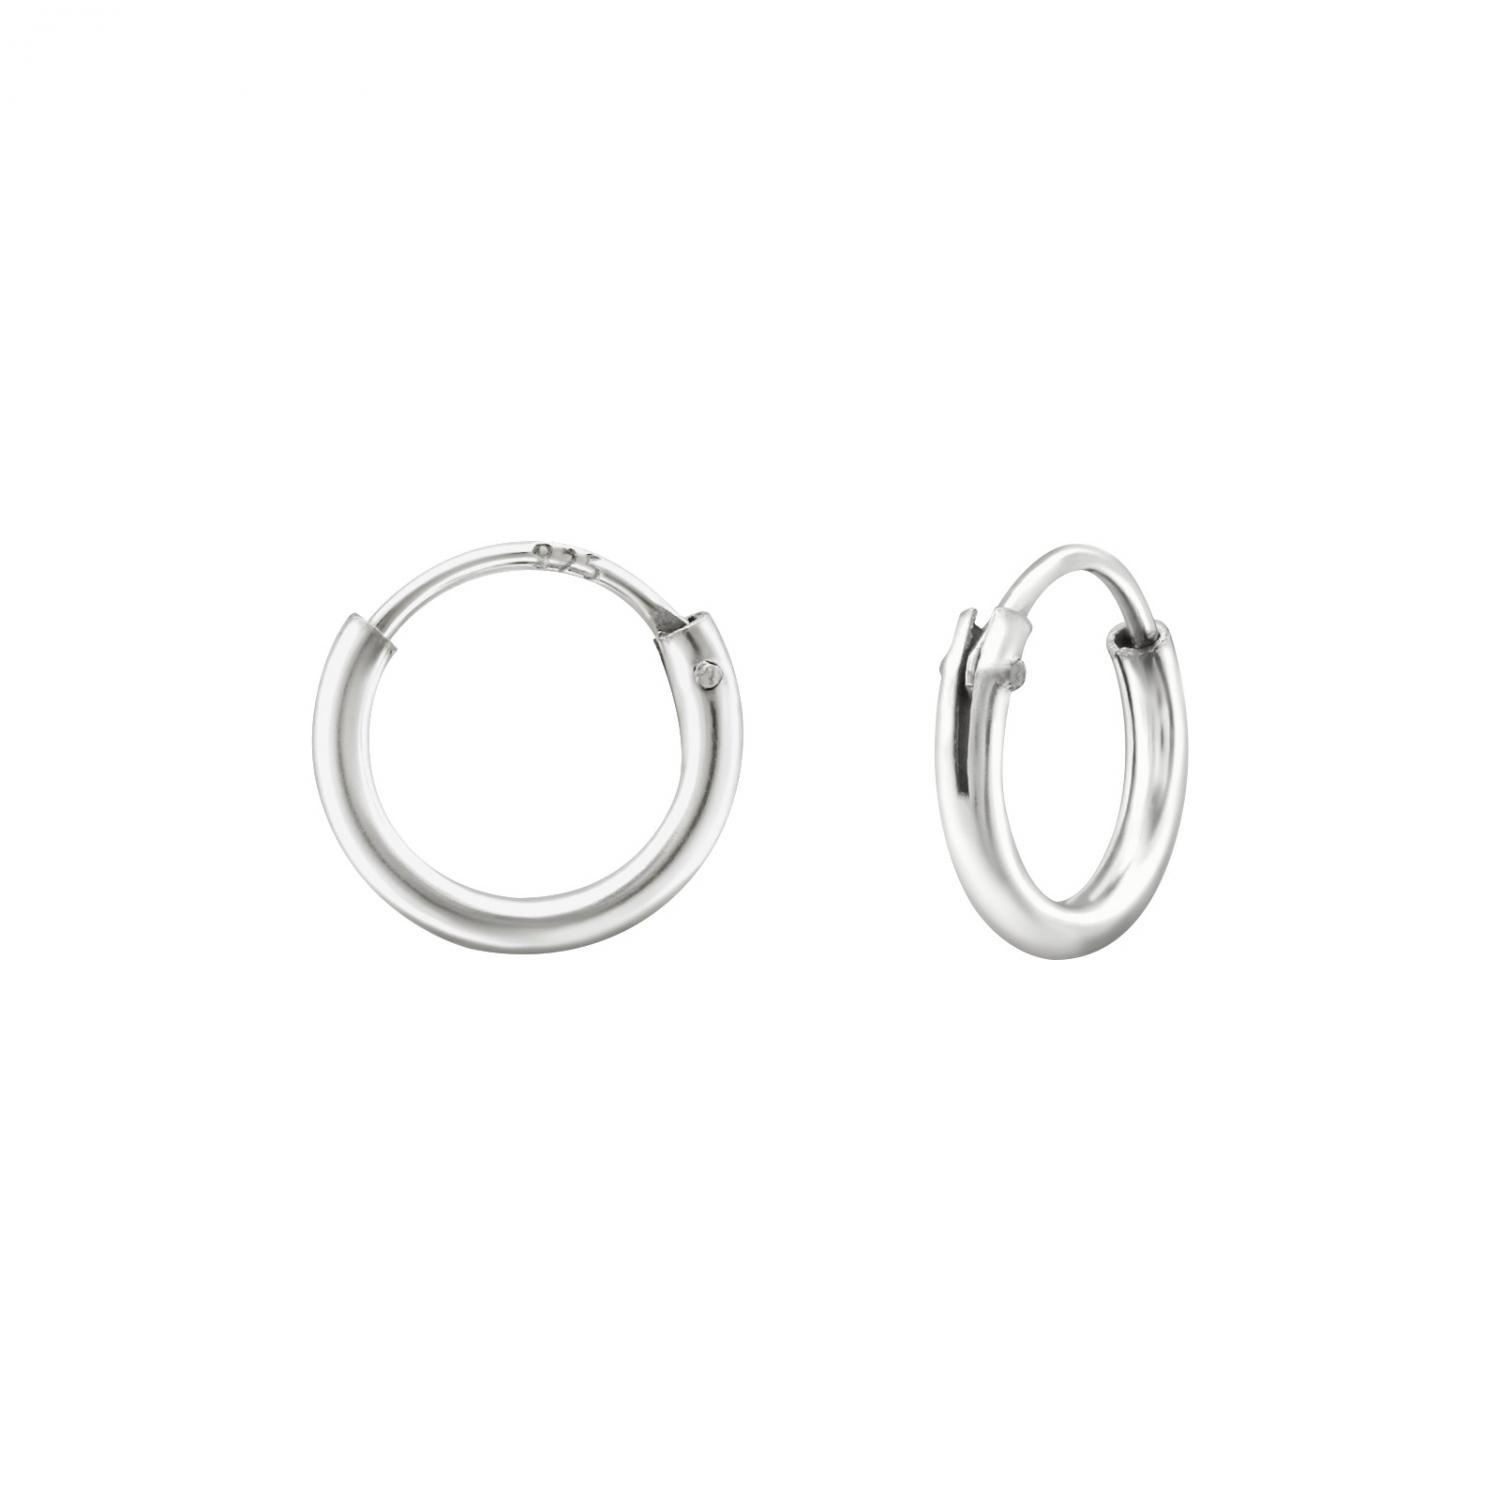 Hoops i 925 Sterling Silver, 6 mm